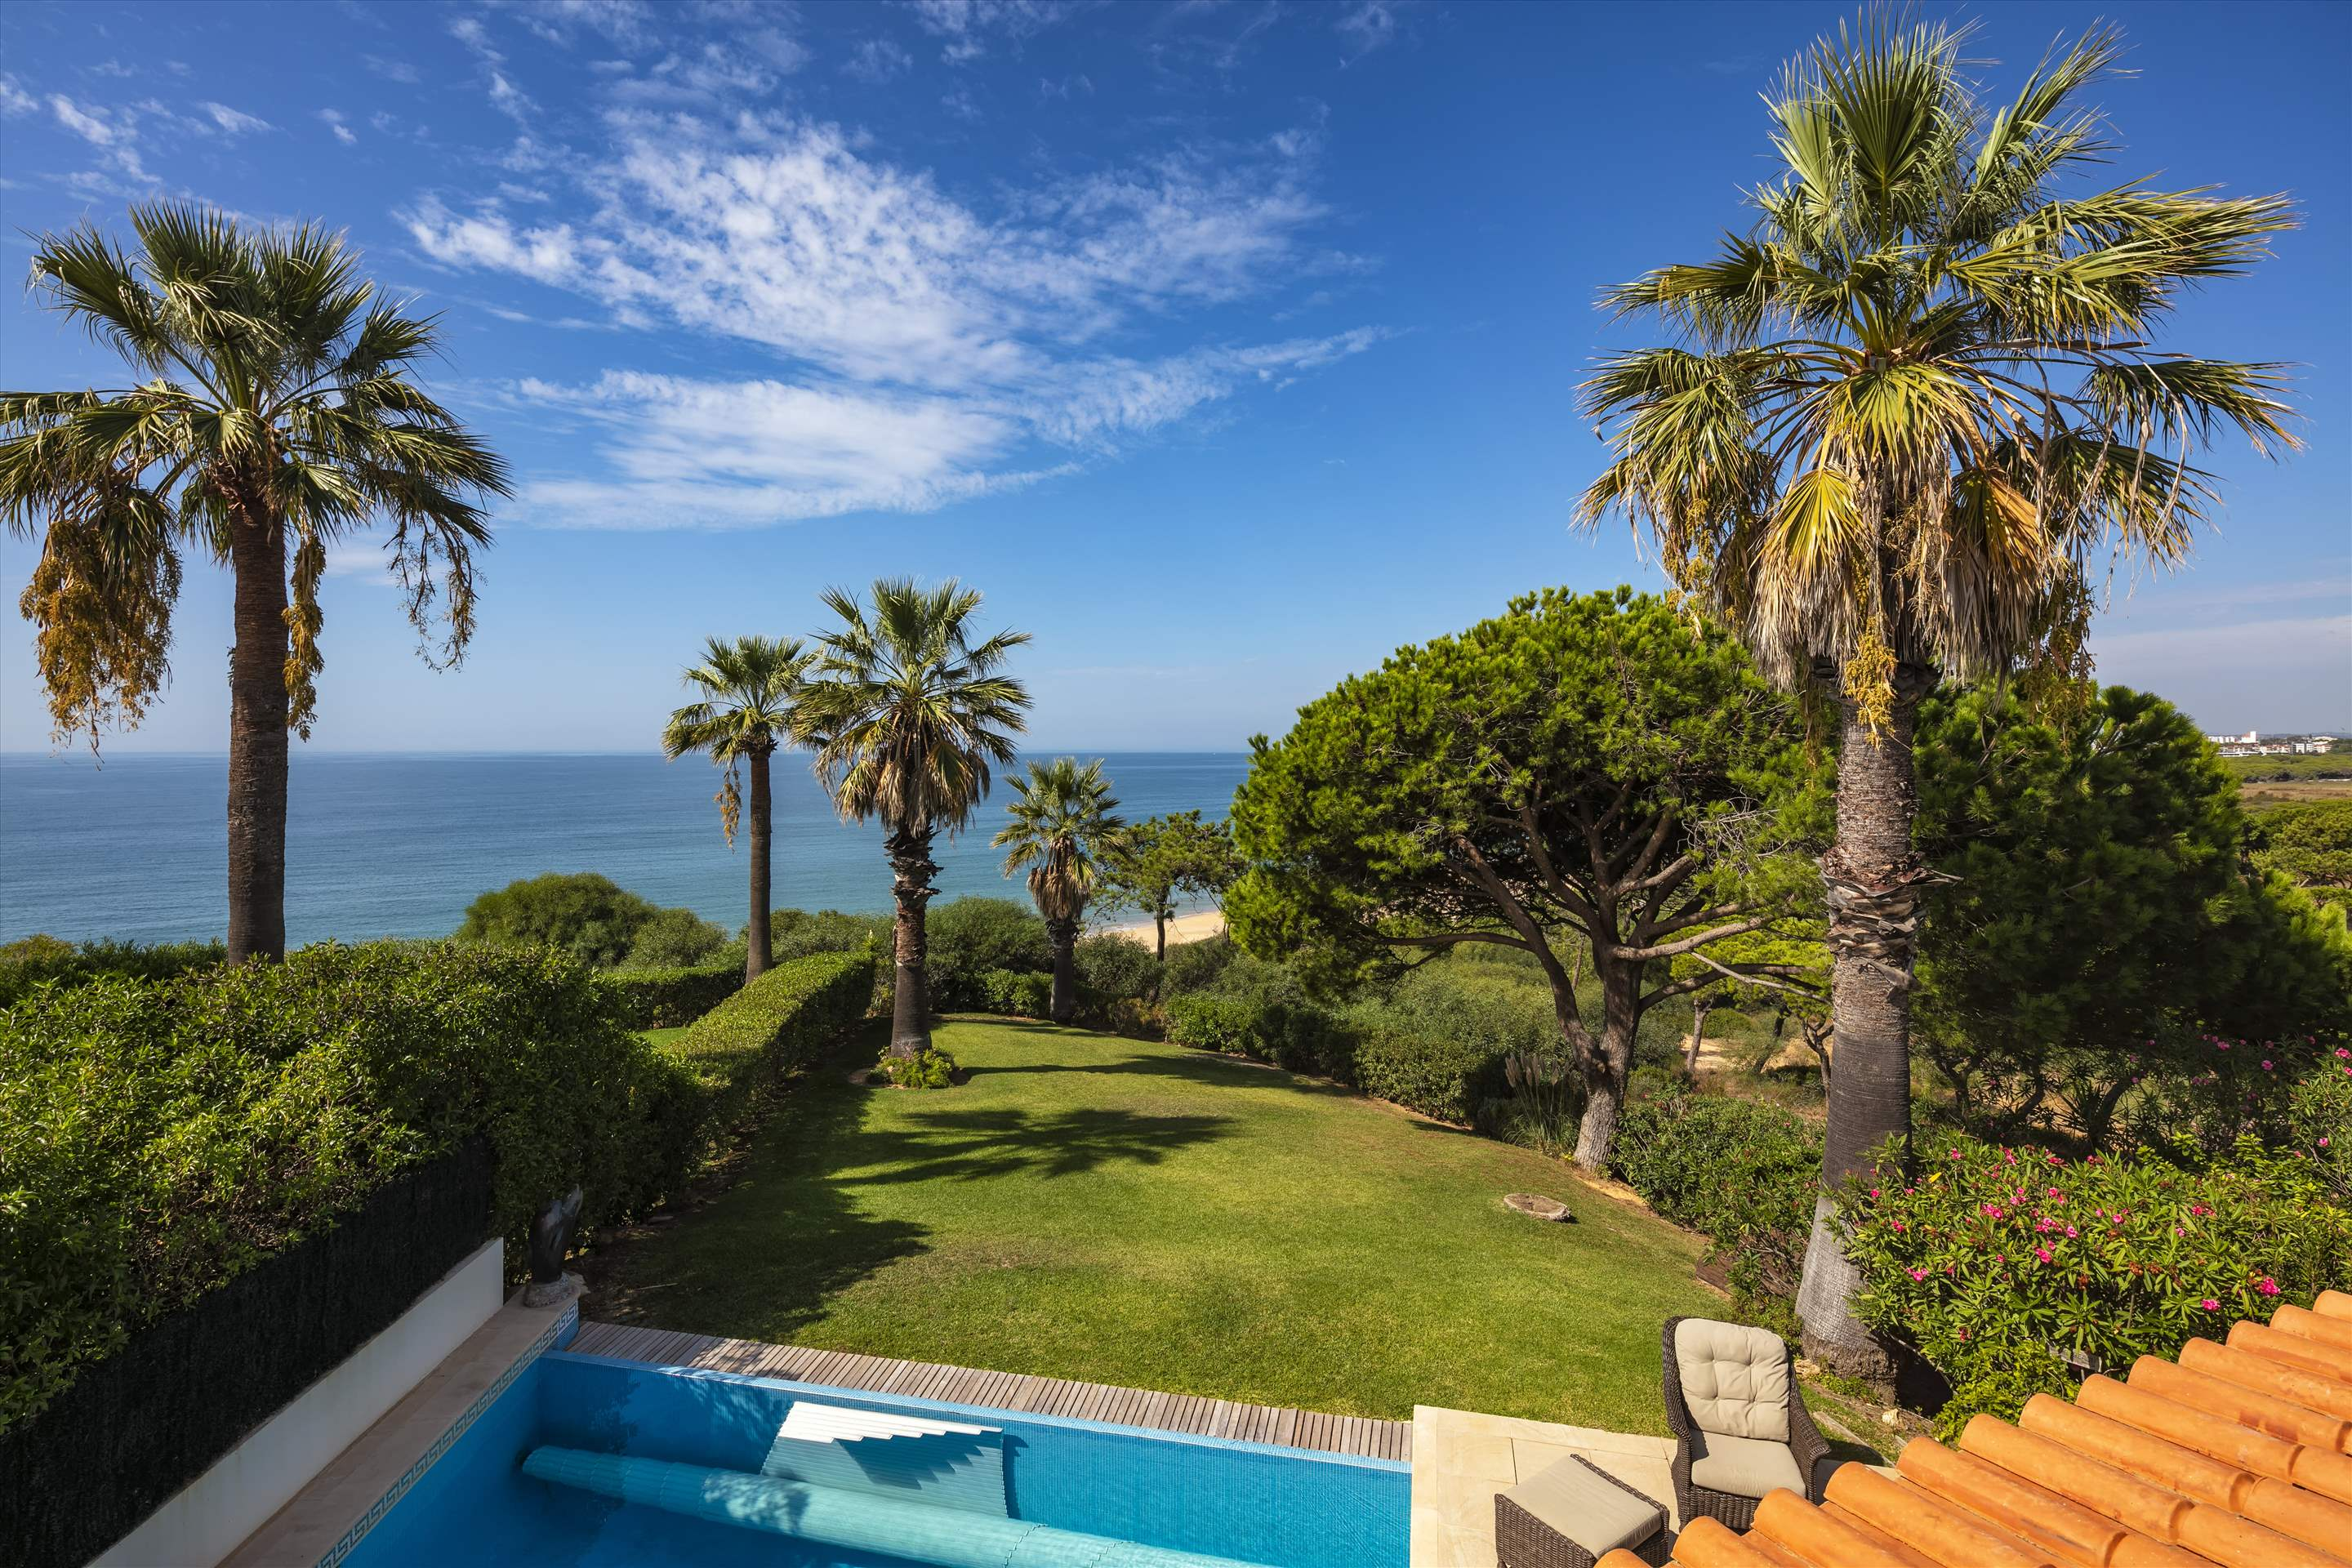 Villa Ocean Beach, 4 bedroom villa in Vale do Lobo, Algarve Photo #6